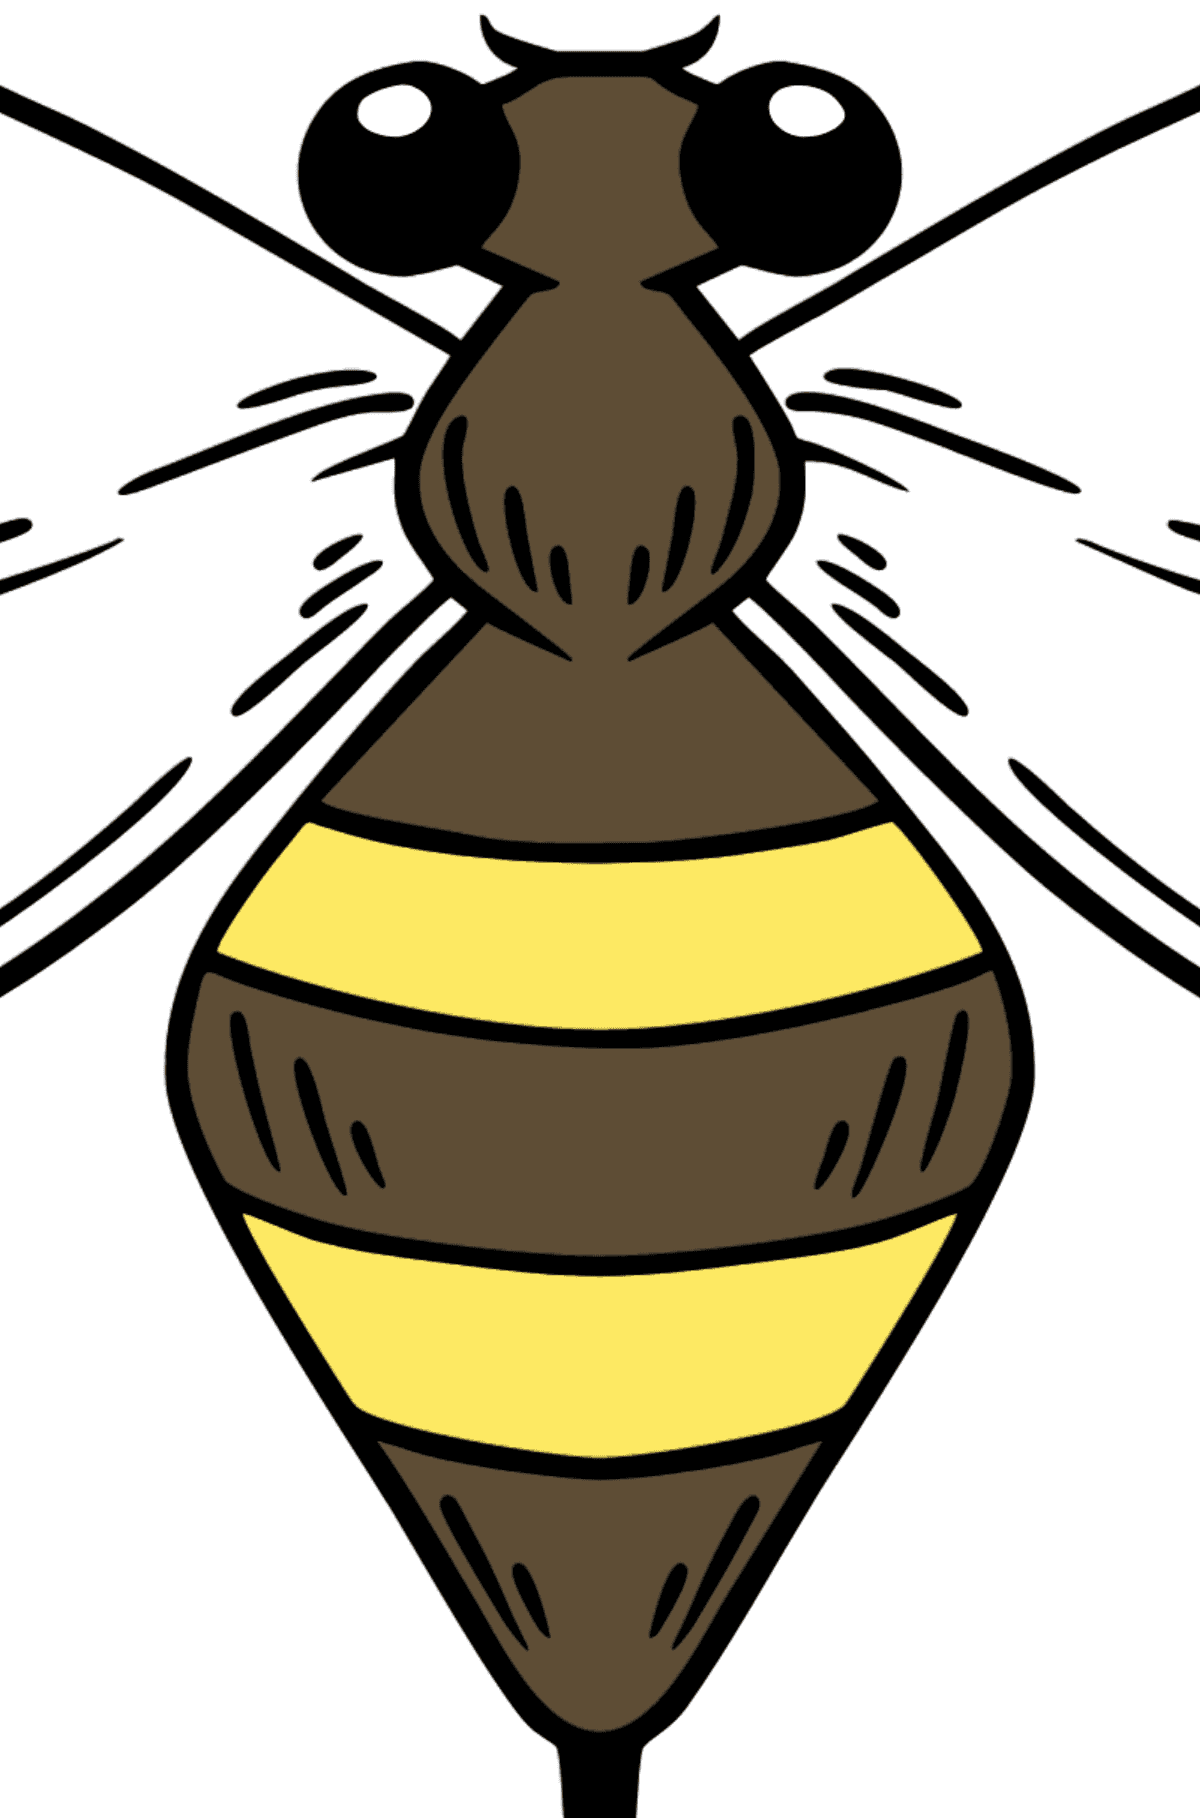 Wasp coloring page - Coloring by Symbols and Geometric Shapes for Kids